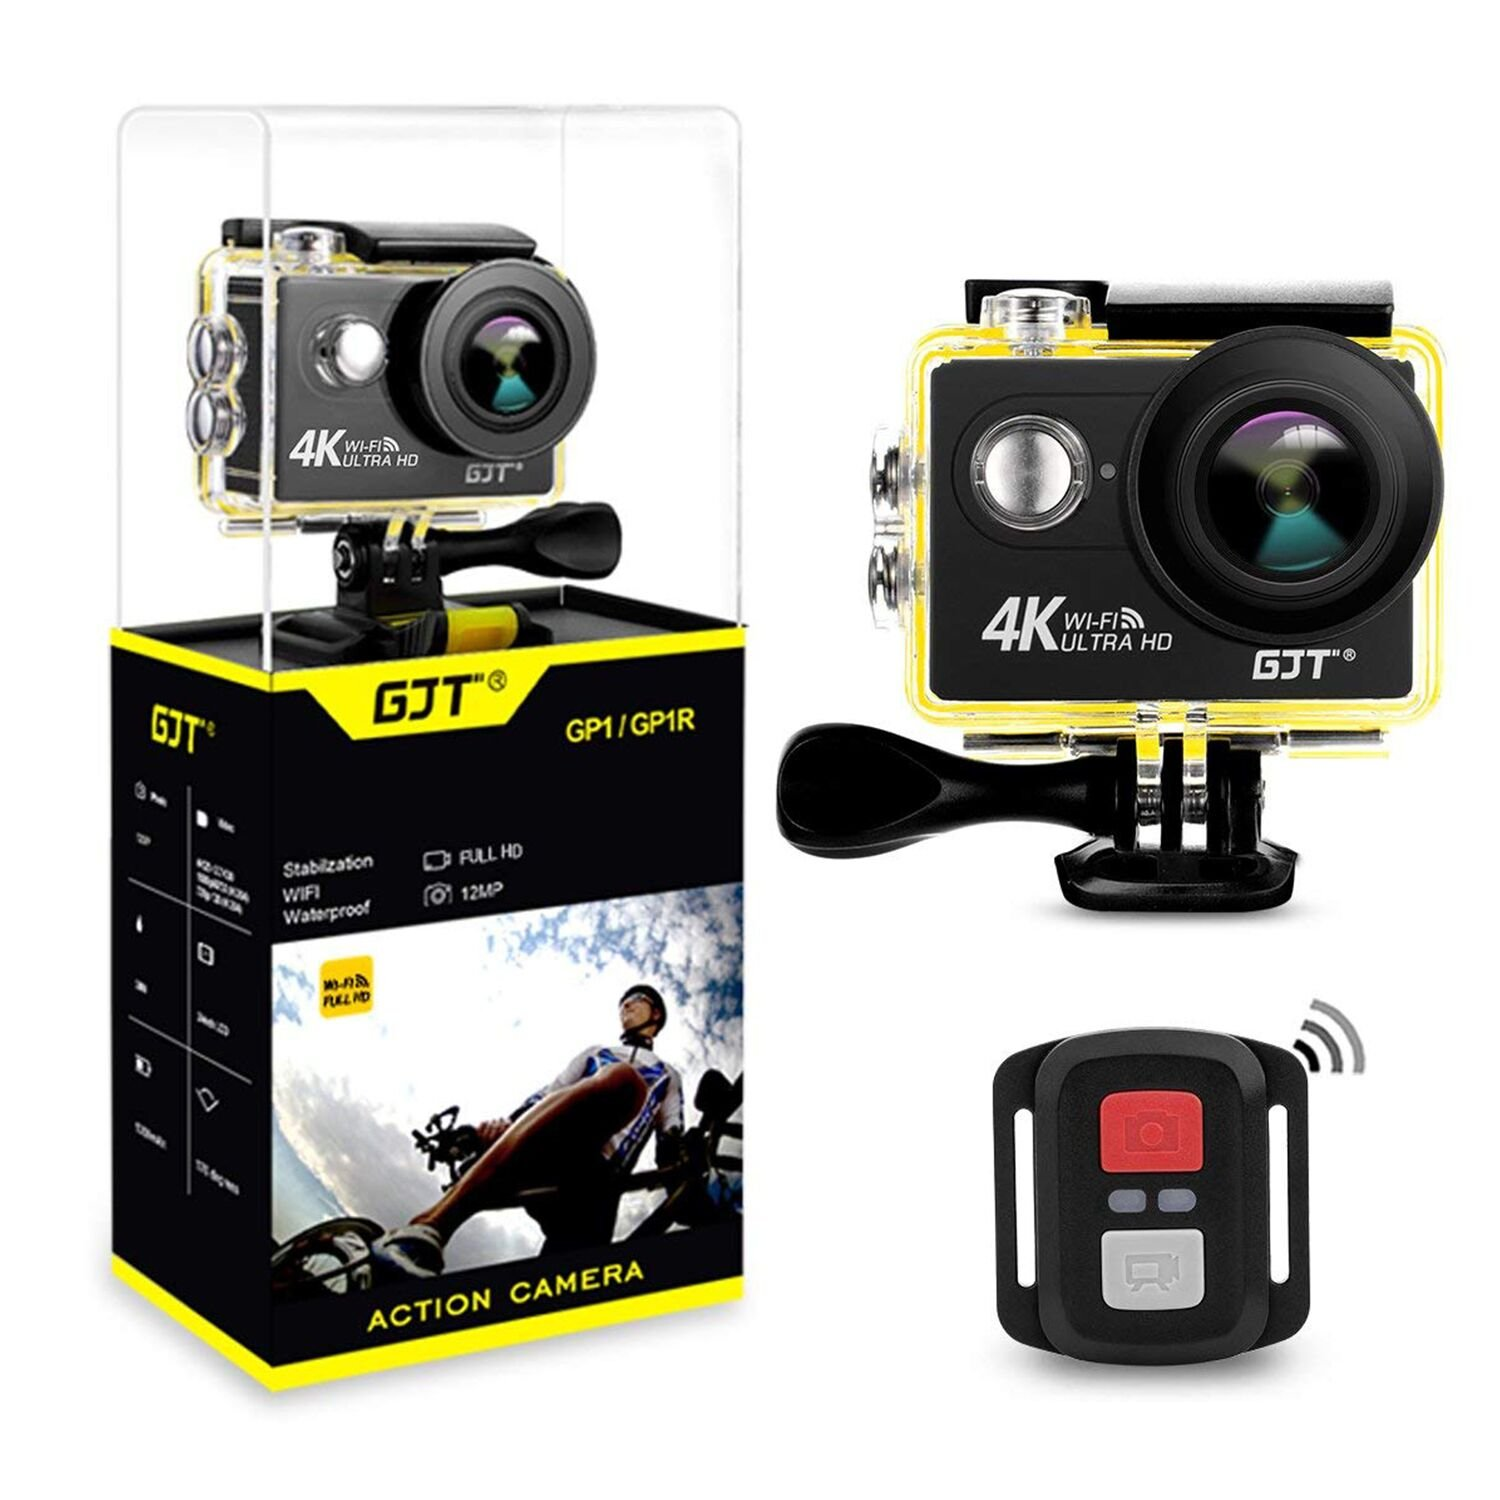 GJT GP1R 4K 25FPS Sports Action Camera with 18 Accessories,WiFi 12MP Ultra HD Camera 30M Waterproof,2 Inch LCD Screen DV Camcorder, 170 Degree Wide Angle Lens,with Remote Control, 2x1350mAh Batteries